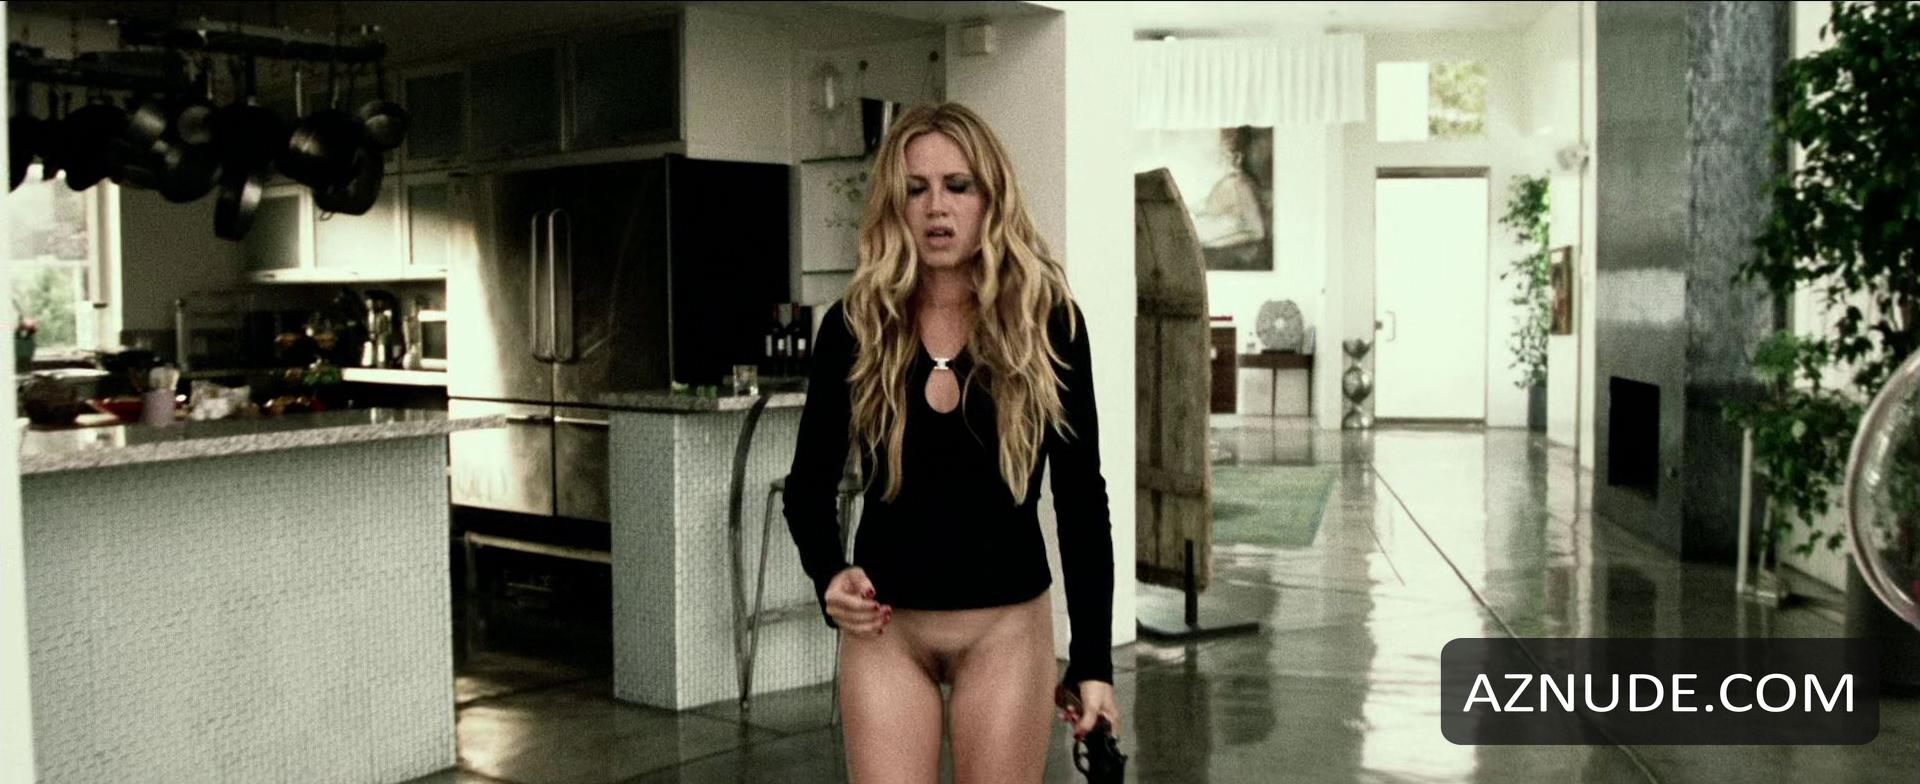 Nude celebs best nudes in horror movies vol 4 - 96 part 9